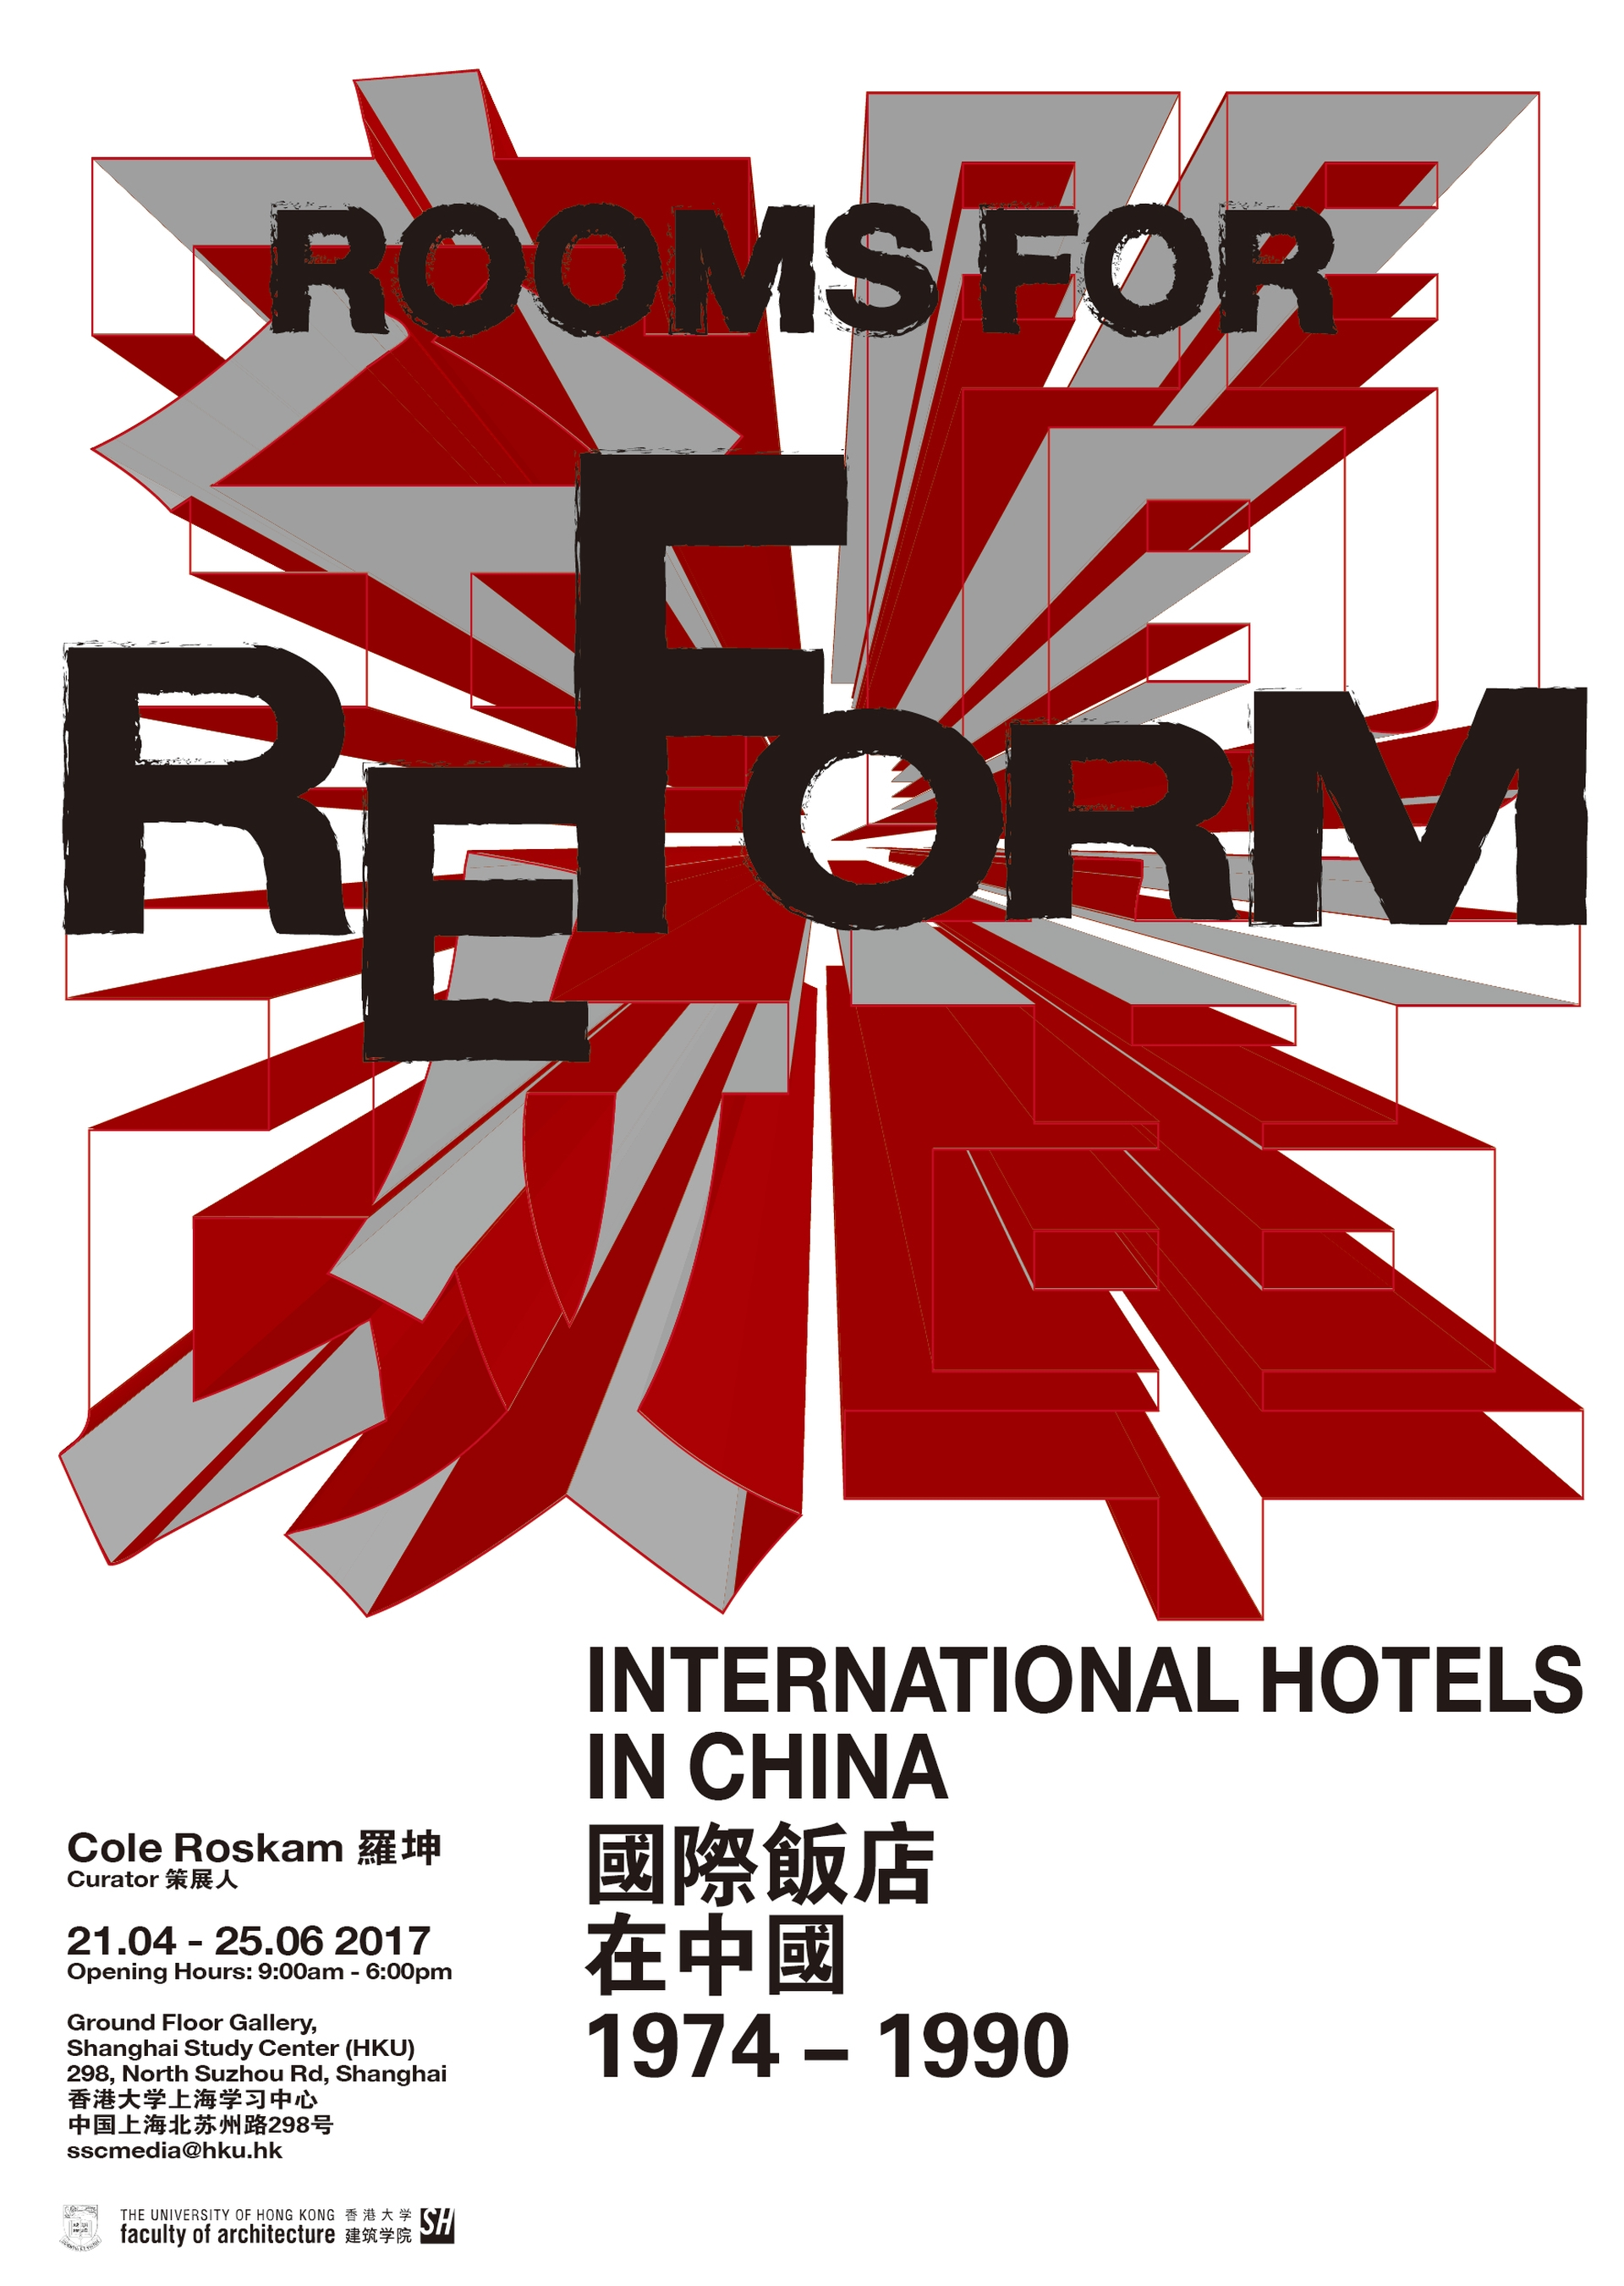 Rooms for Reform: International Hotels in China, 1974-1990